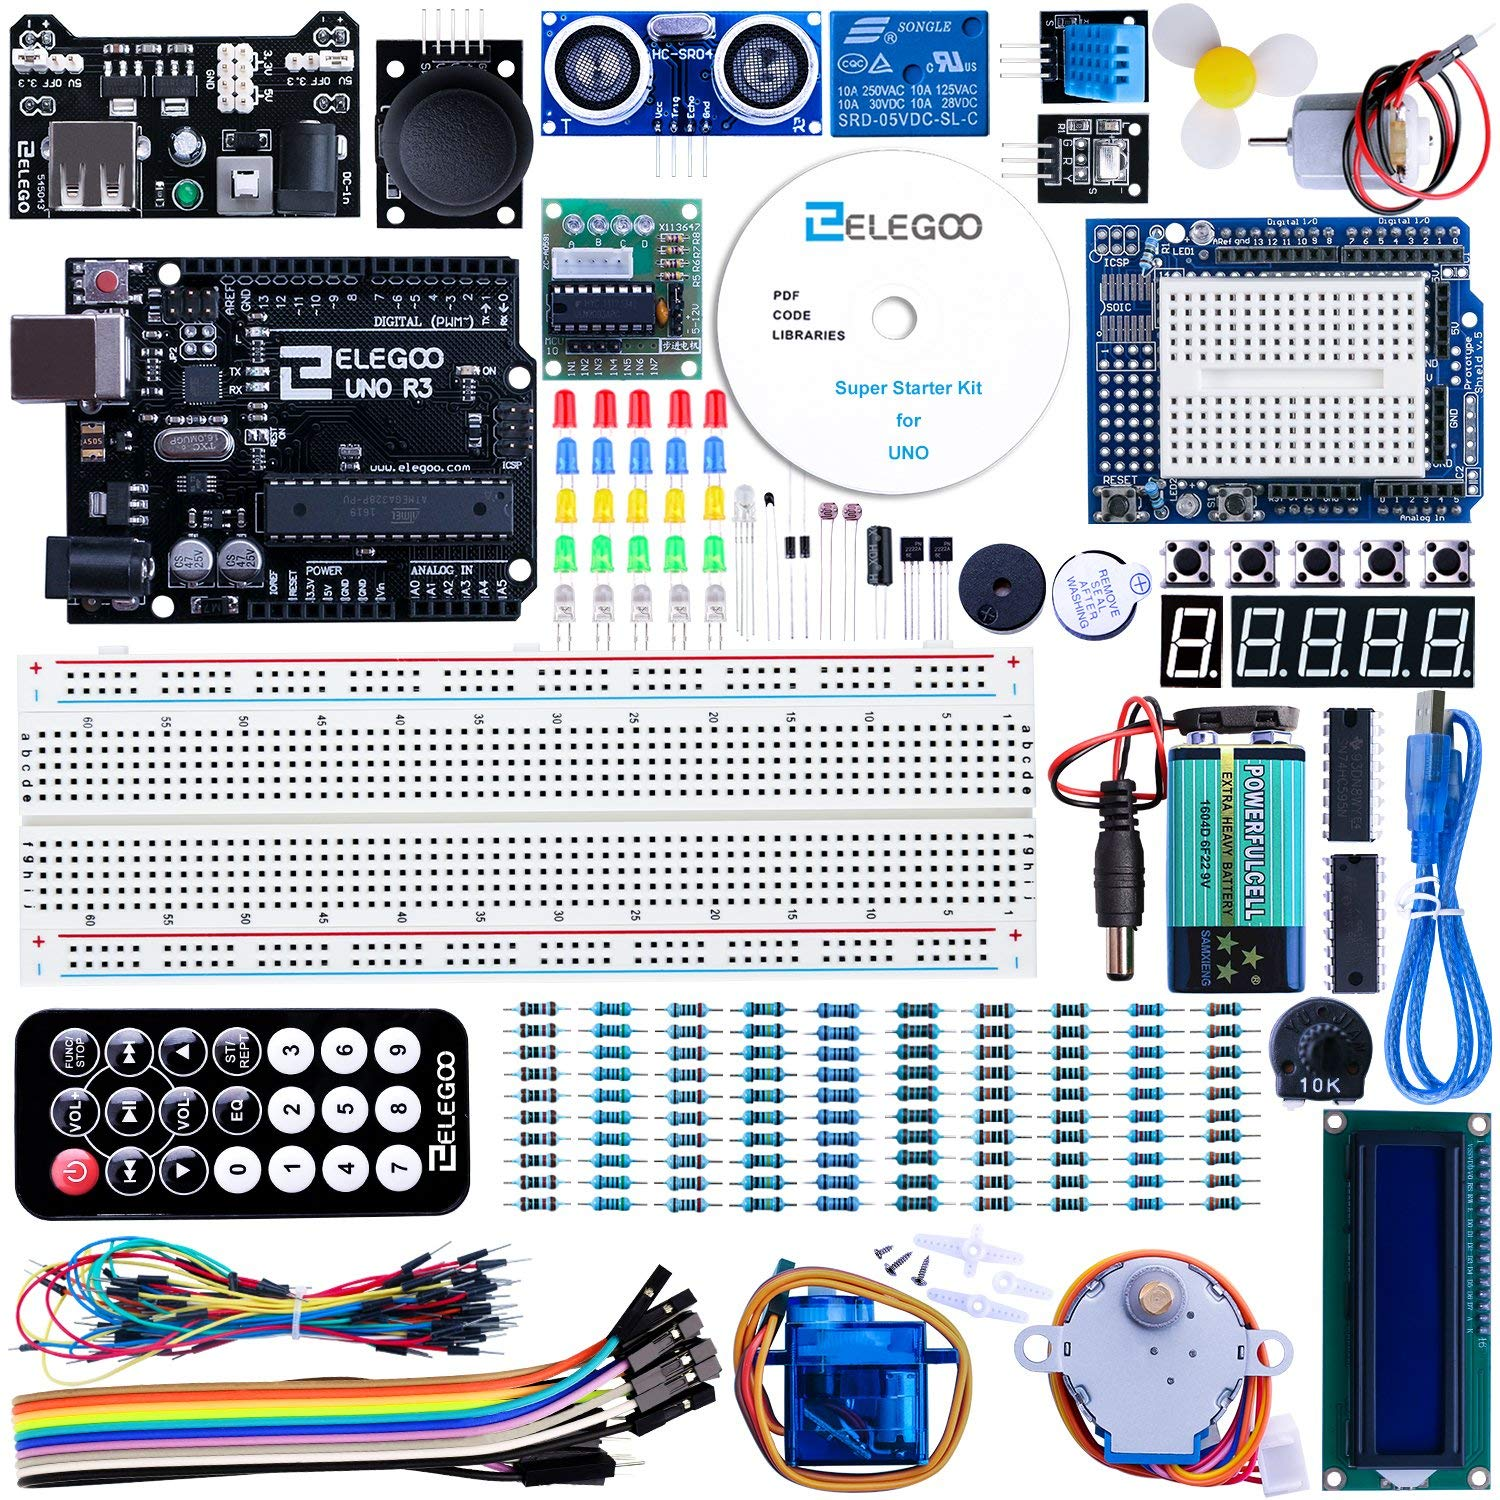 ELEGOO Arduino Carte UNO R3 Starter Kit de Démarrage Super Guide d'Utilisation Français Débutants Professionnels DIY